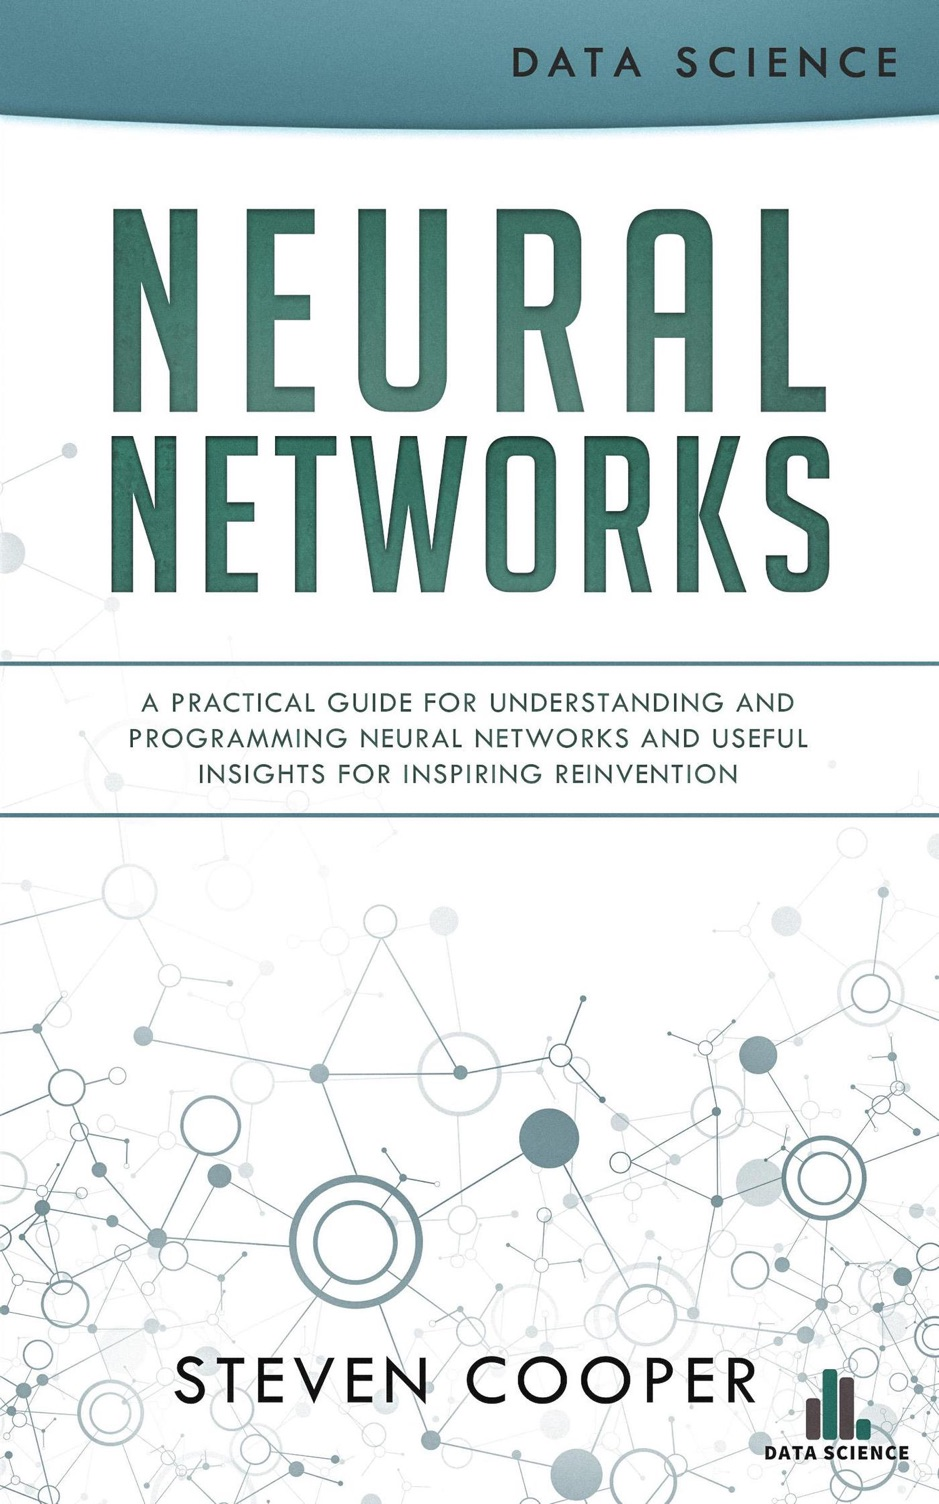 Neural Networks: A Practical Guide for Understanding and Programming Neural Networks and Useful Insights for Inspiring Reinvention